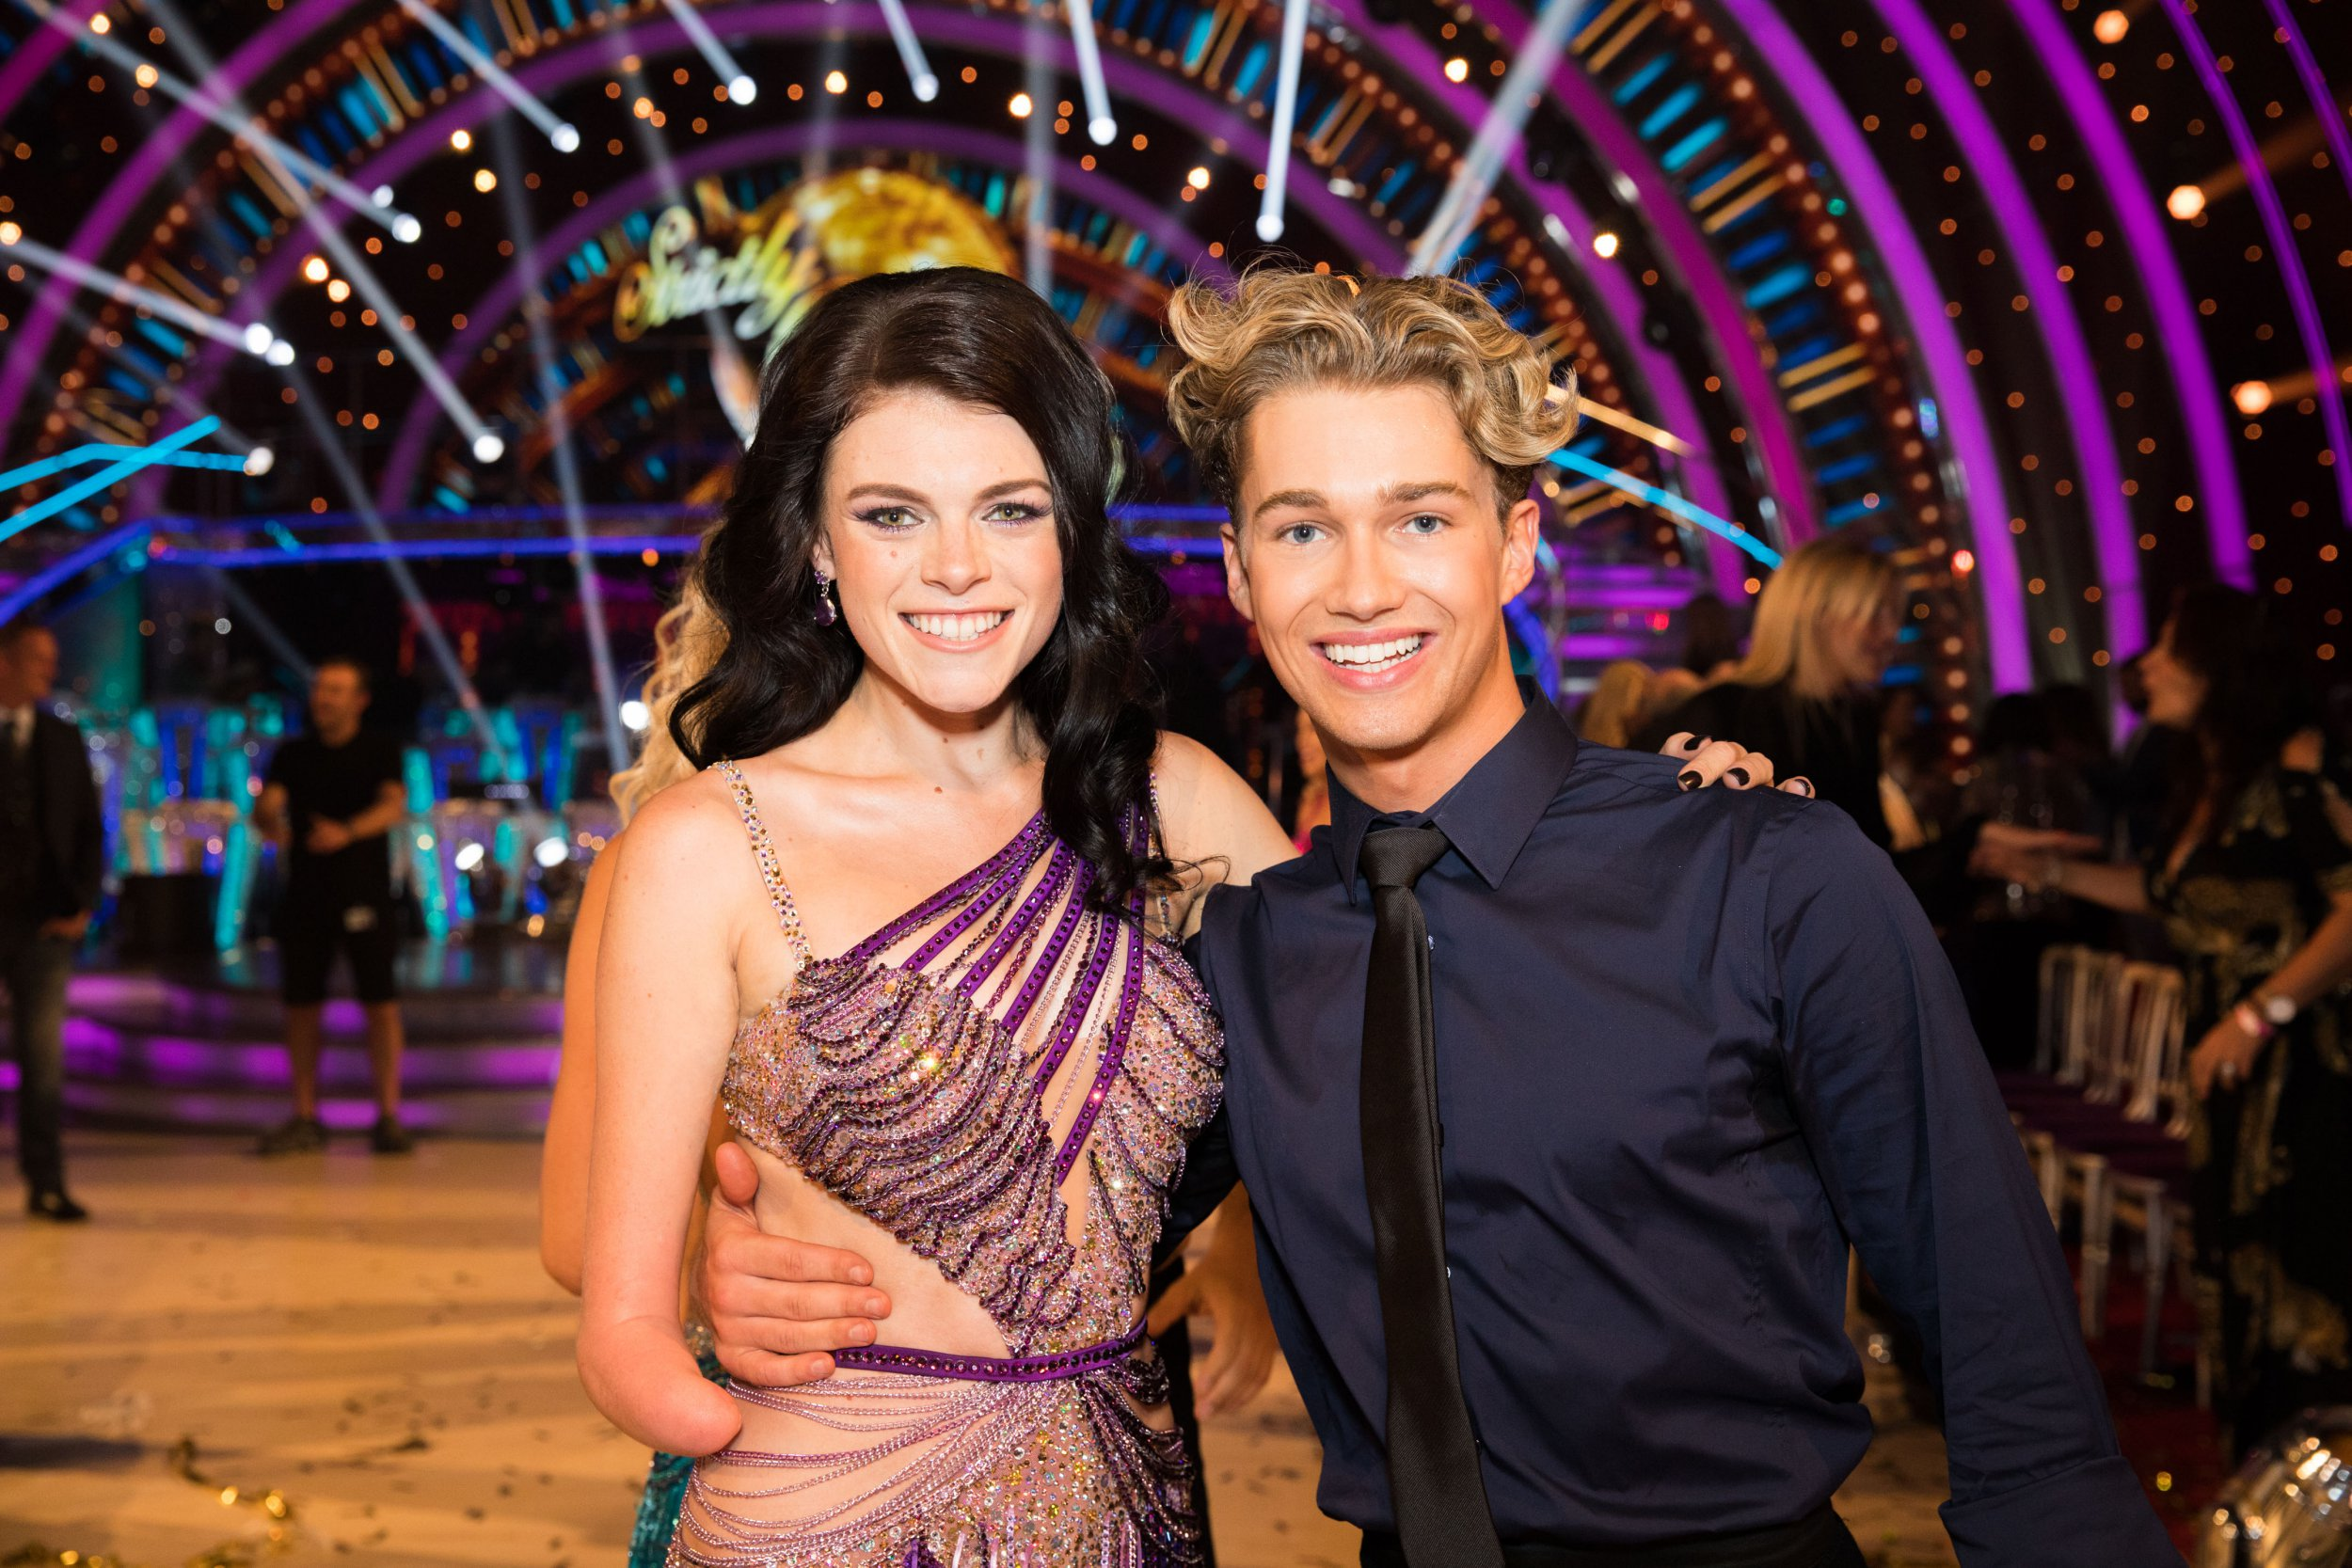 WARNING: Embargoed for publication until 21:00:01 on 08/09/2018 - Programme Name: Strictly Come Dancing 2018 - TX: 08/09/2018 - Episode: n/a (No. 1) - Picture Shows: **Strictly embargoed util 21:00:01 08/09/2018** Lauren Steadman, AJ Pritchard - (C) BBC - Photographer: Guy Levy